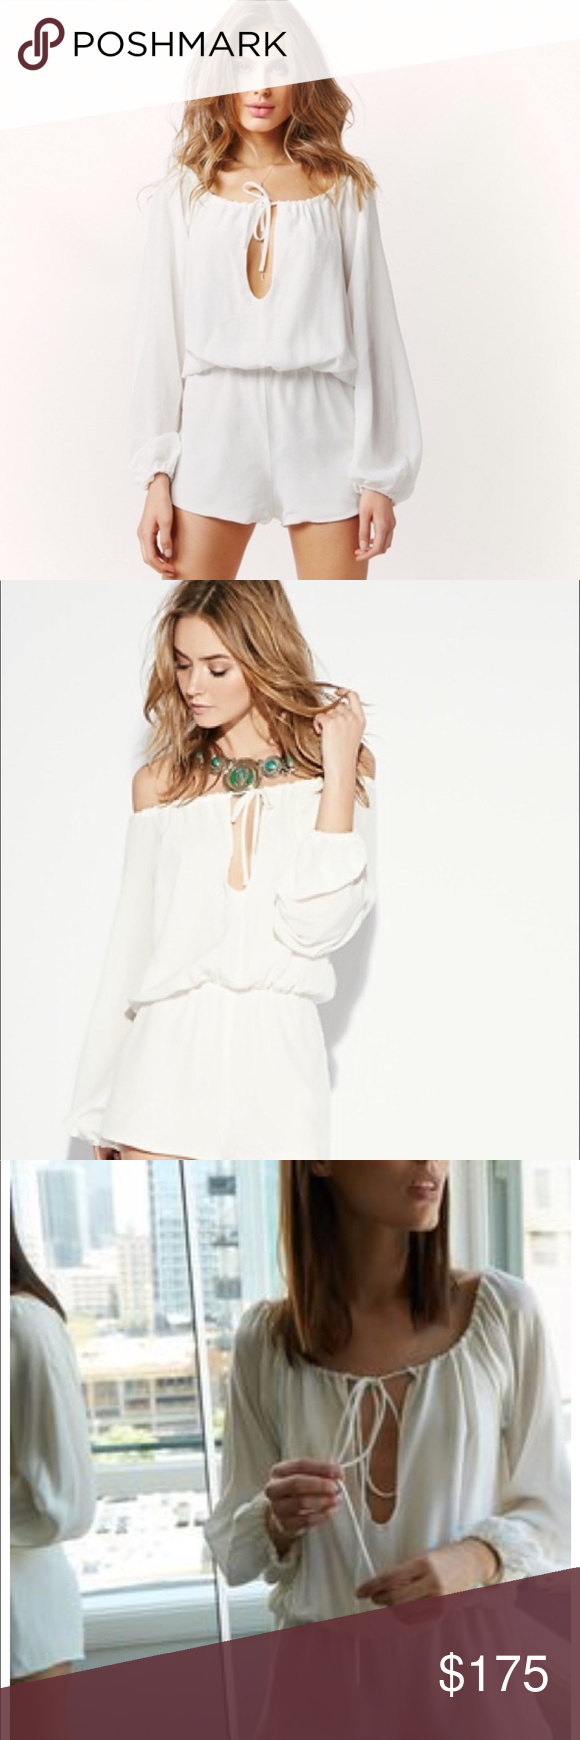 9d90264a9a3 Stone Cold Fox Phoenix Romper Beautiful white silk Romper than can be worn  on or off